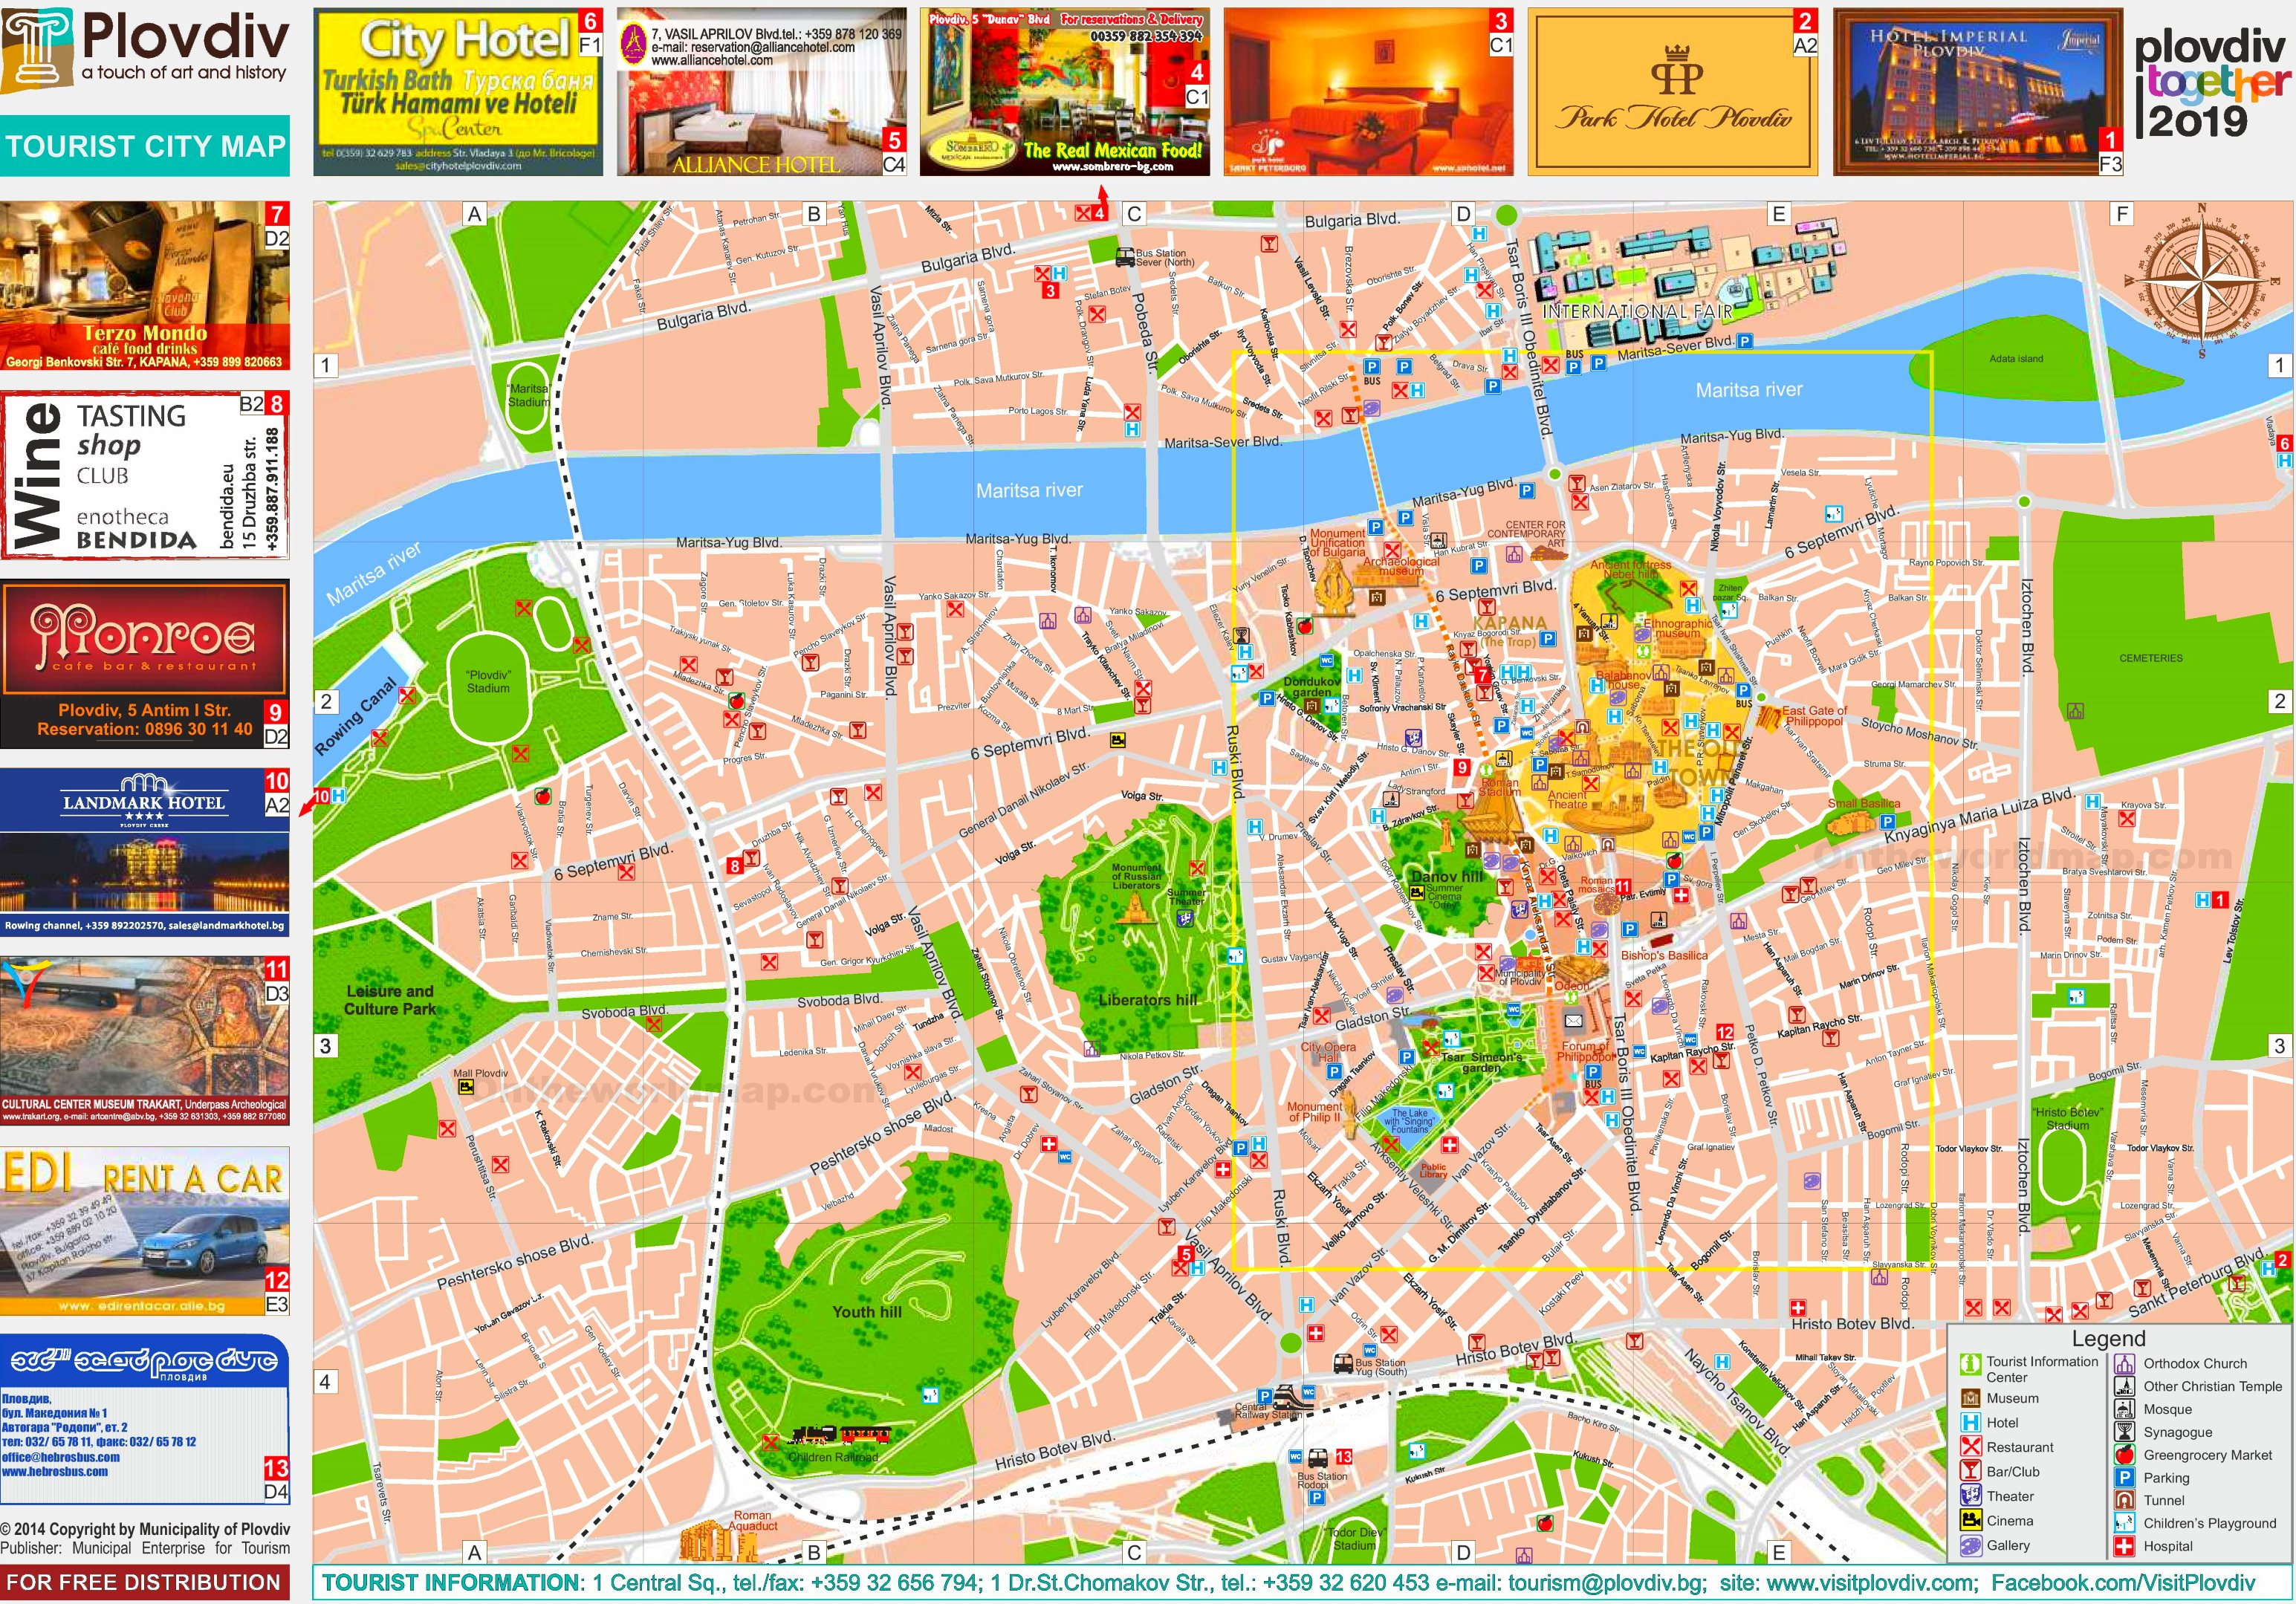 Plovdiv Tourist Map